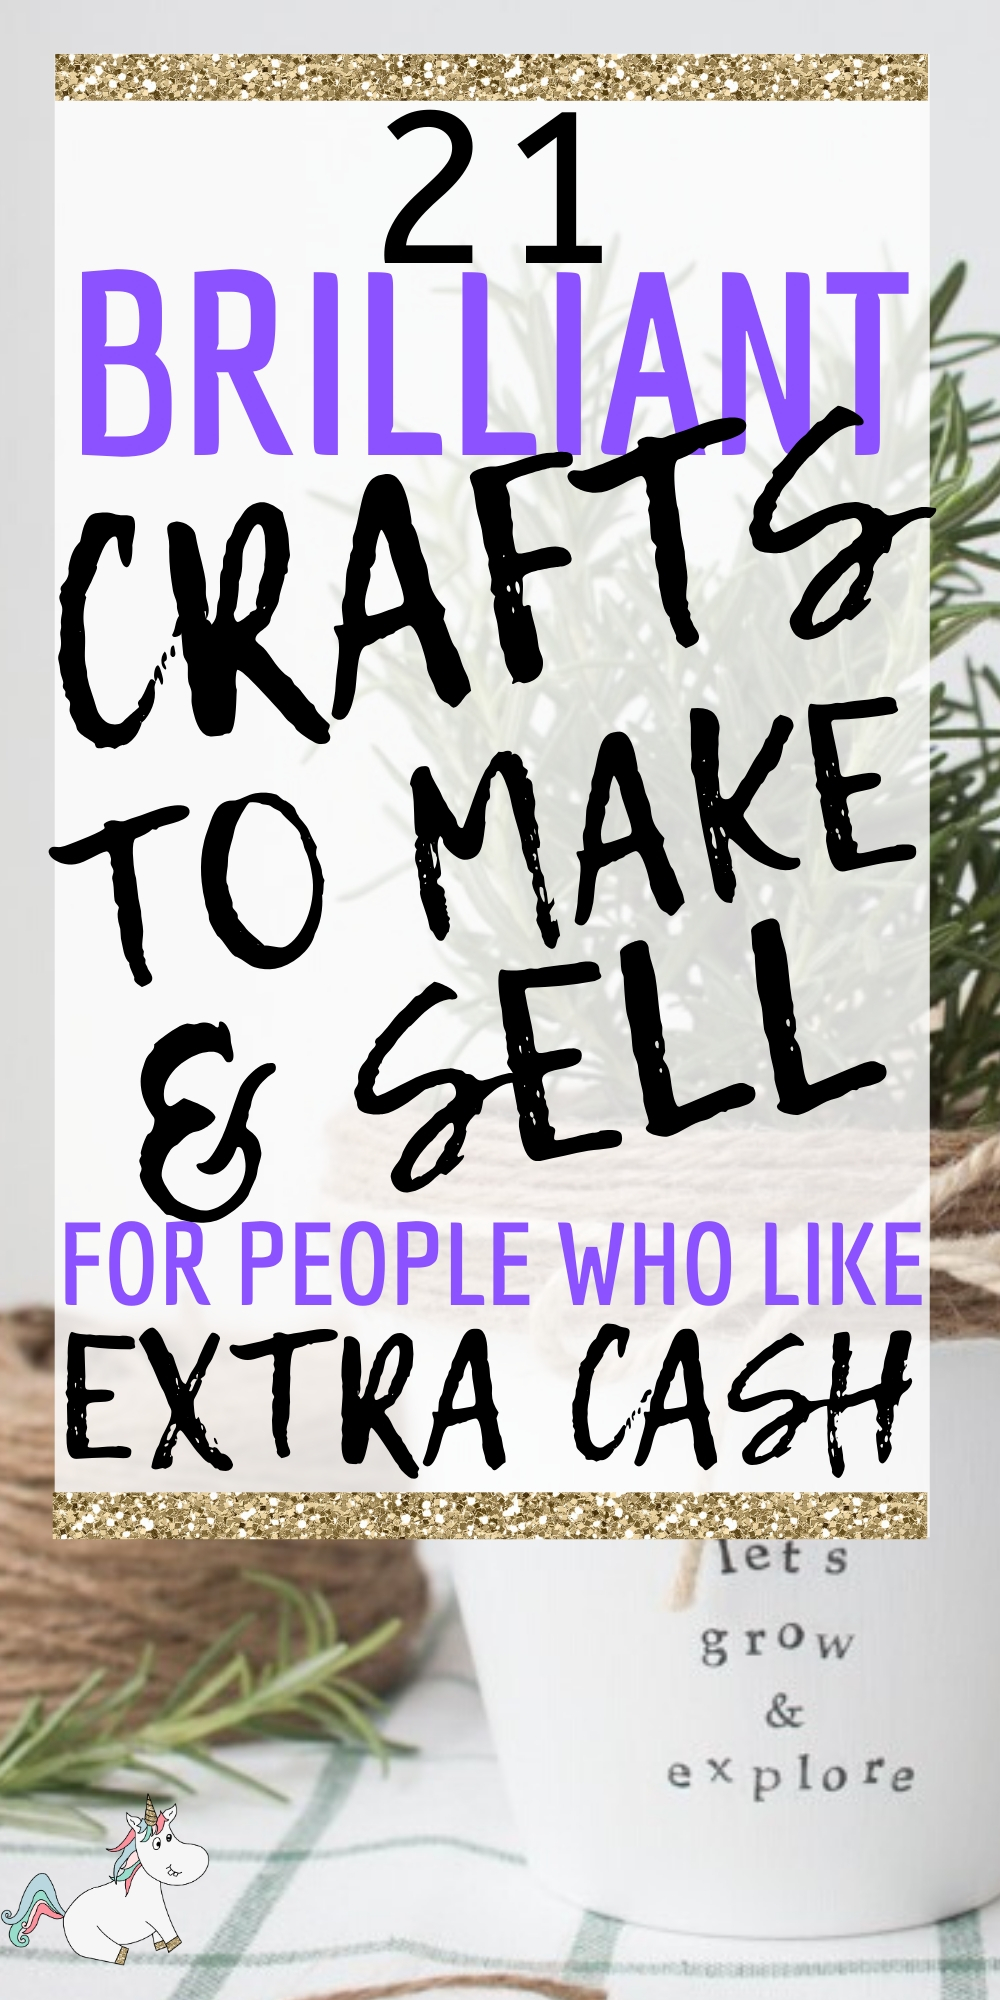 21 Unique and Easy Crafts to make and sell for Extra Cash (Updated for 2020) Looking to make more money from homw ith your crafts? Then look no further than these fantasic crafts ideas you can make and sell either at your local crafts fair or online! #easycraftstomakeandsell #uniquecrafts